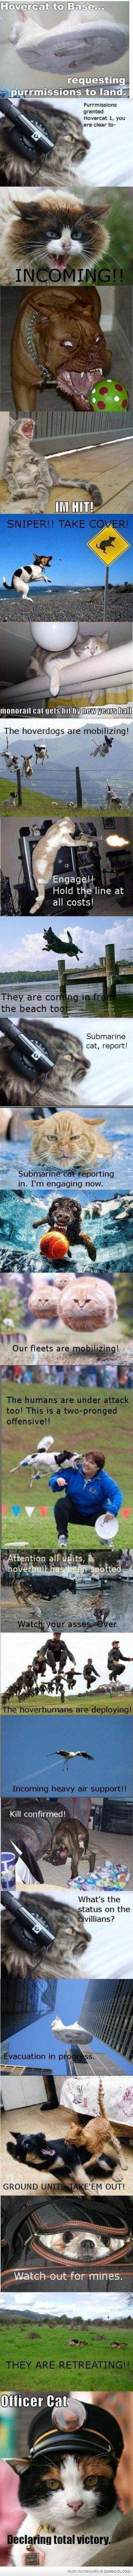 CRYING!: Funny Animals, Funny Stuff, Funnies, Cats And Dogs, So Funny, Hovercat